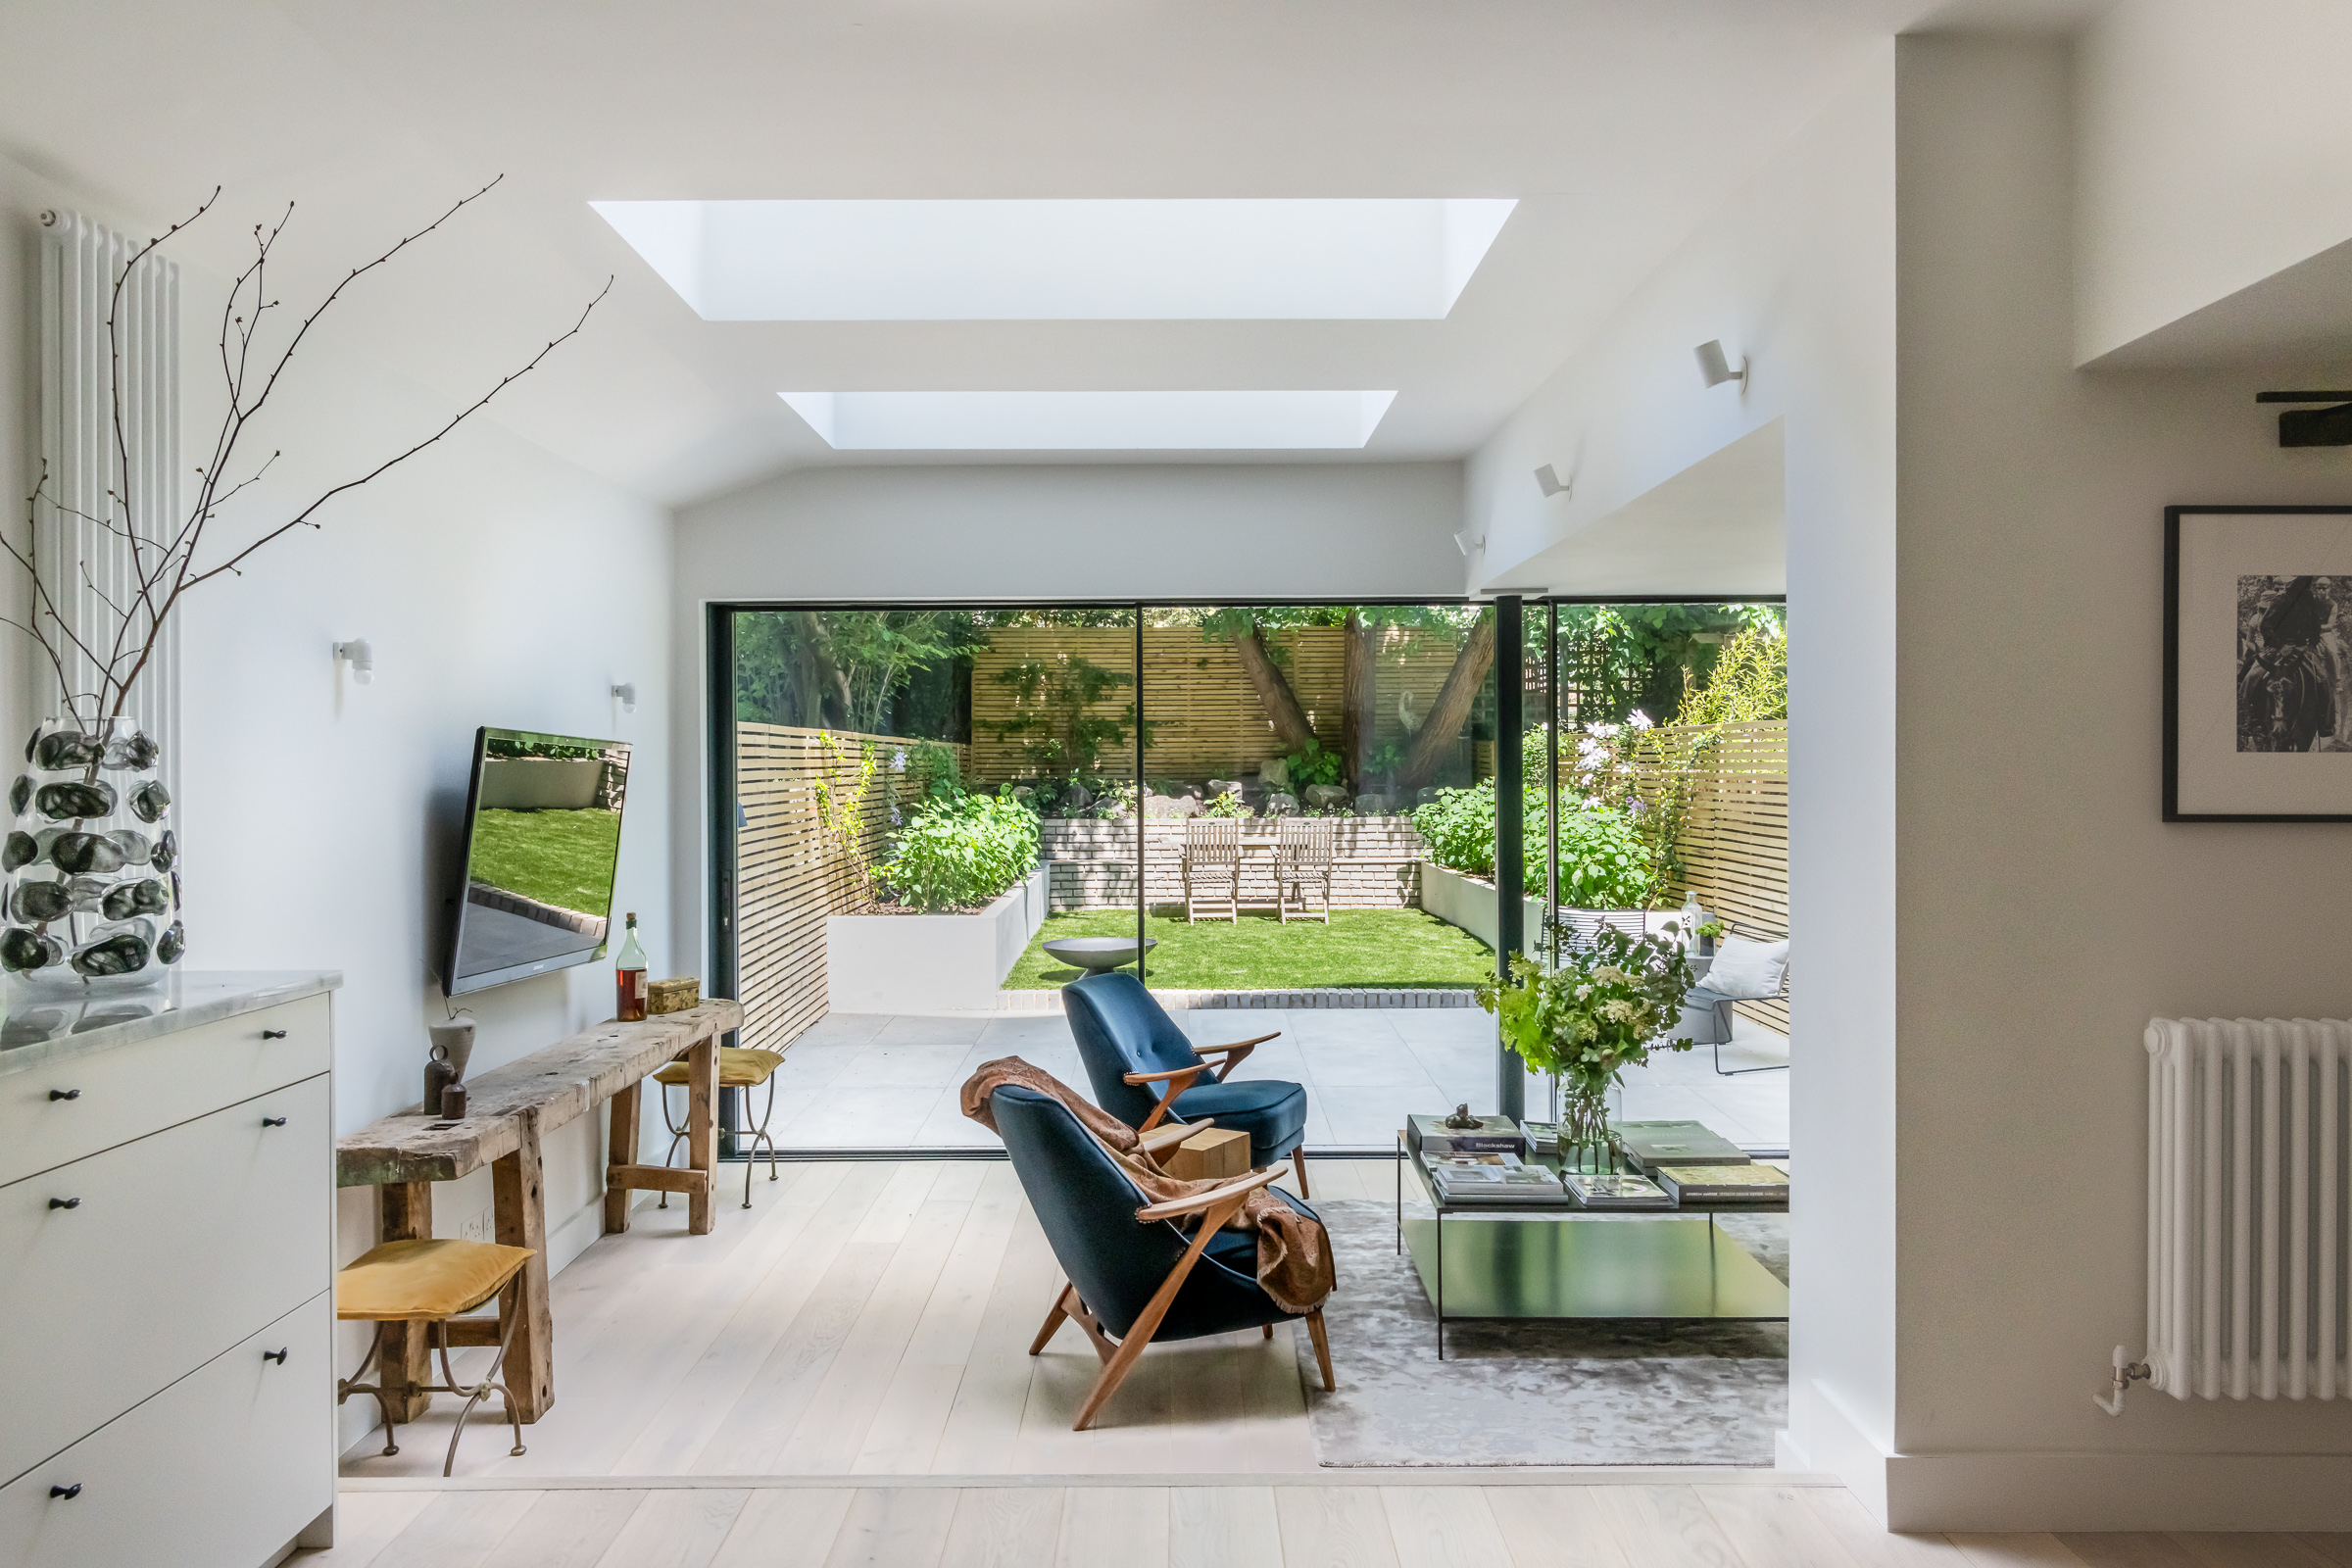 </p> <p>Find your ideal home design pro on designfor-me.com - get matched and see who's interested in your home project. Click image to see more inspiration from our design pros</p> <p>Design by Olivia, architect from Islington, London</p> <p>#architecture #homedesign #modernhomes #homeinspiration #extensions #extensiondesign #extensioninspiration #extensionideas #houseextension #skylights #rooflights </p> <p>